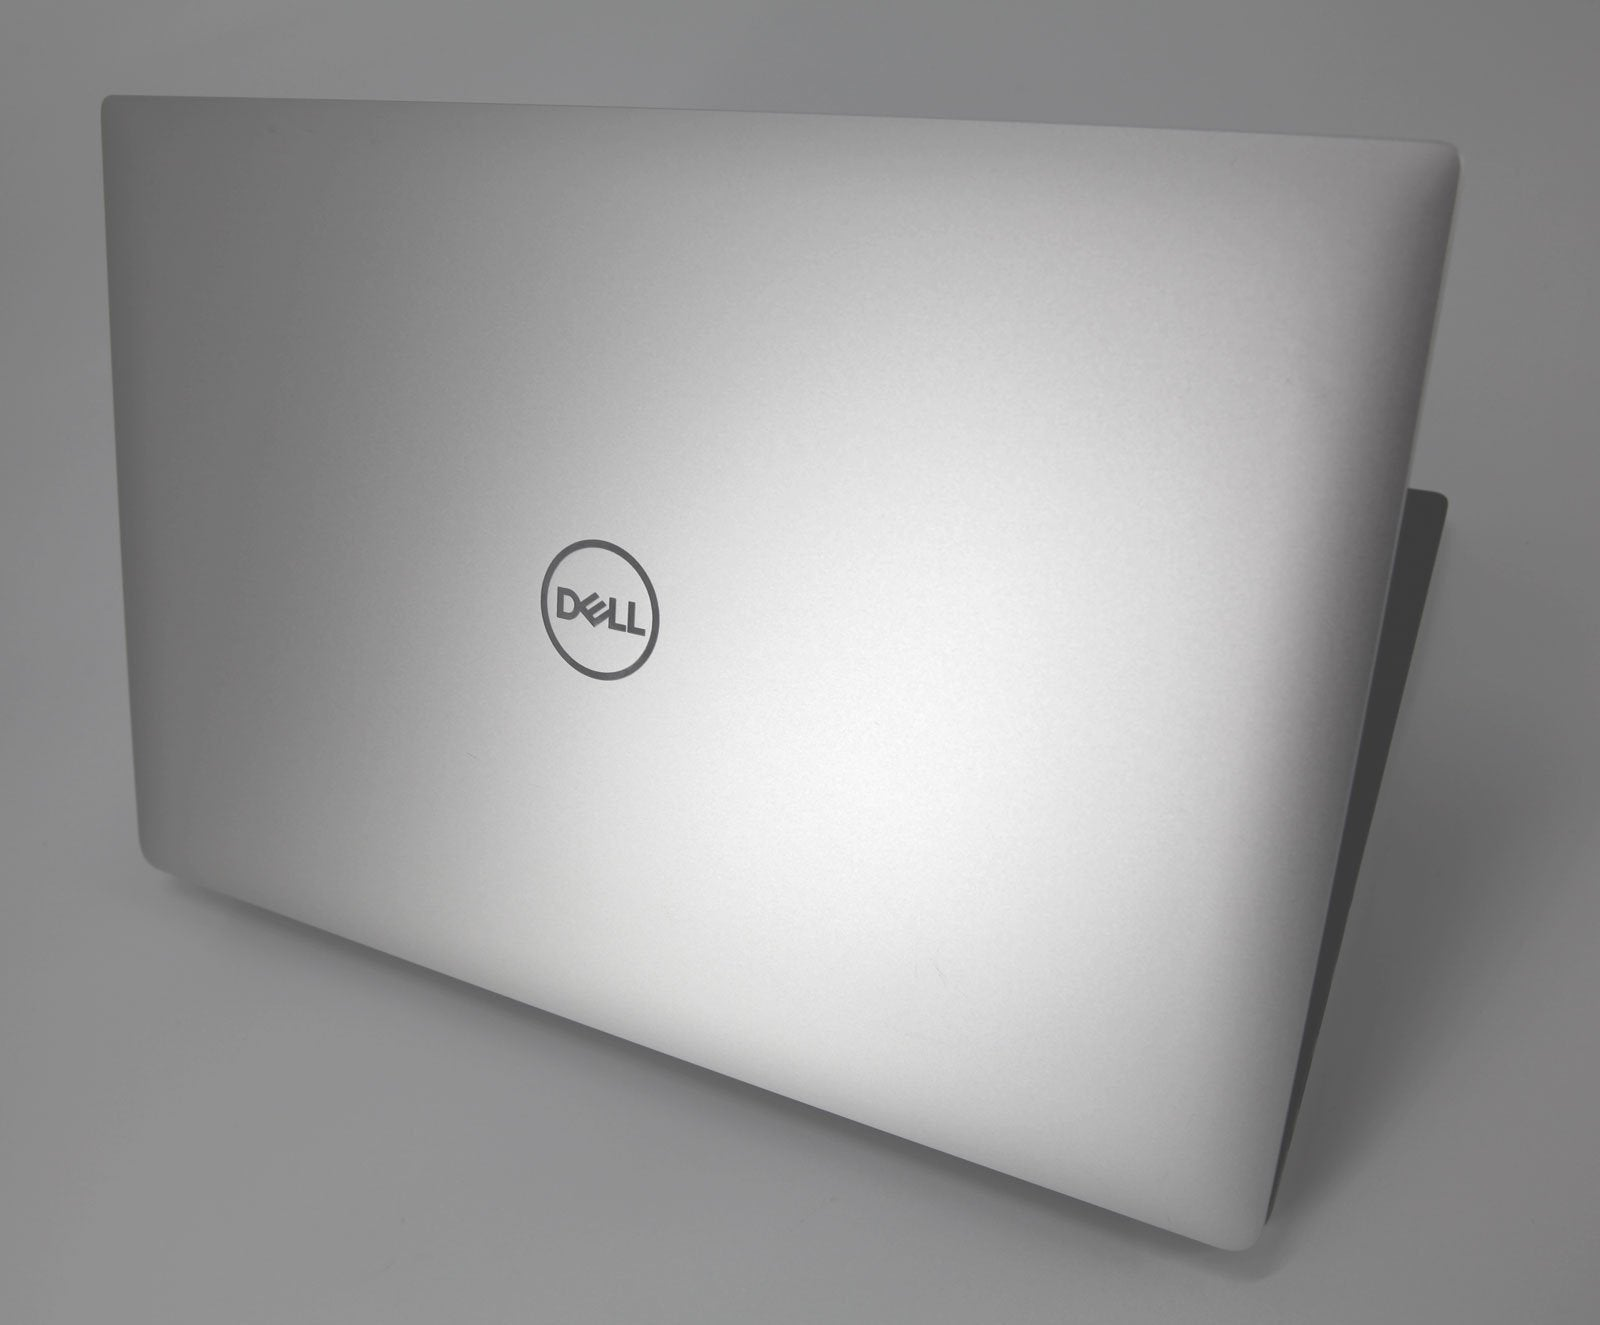 Dell Precision 5530 CAD Laptop: Core i7-8850H, 16GB RAM, 256GB SSD, P1000 1.9KG - CruiseTech